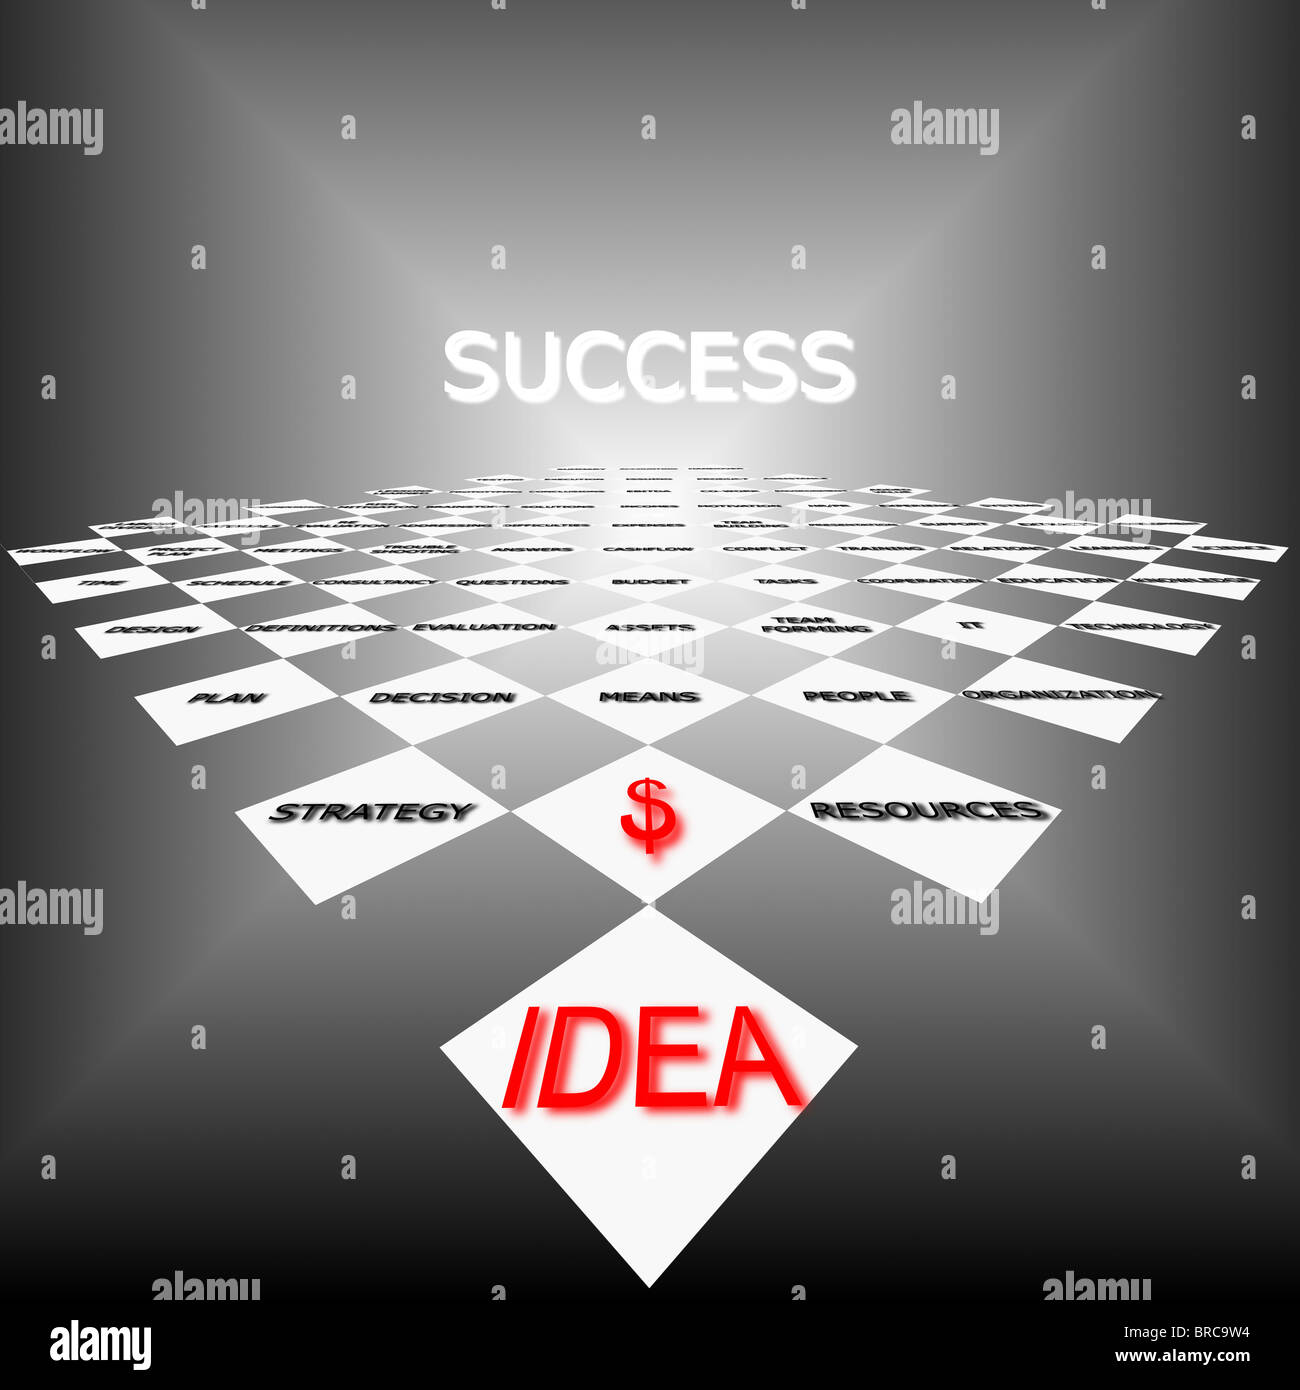 Strategy of success - Stock Image